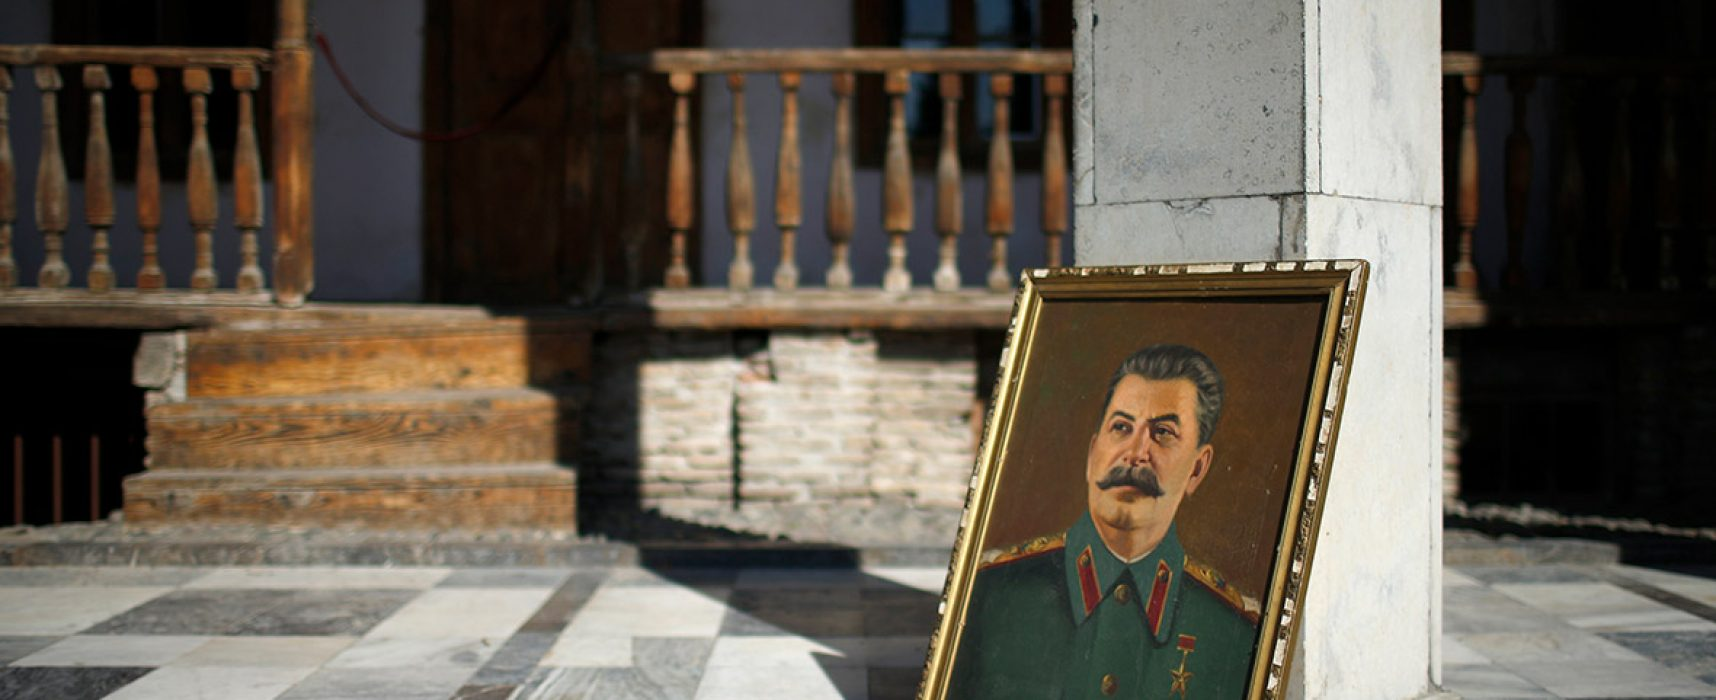 Nearly two-thirds of Russians now favor statues honoring Stalin and oppose memorials to his crimes